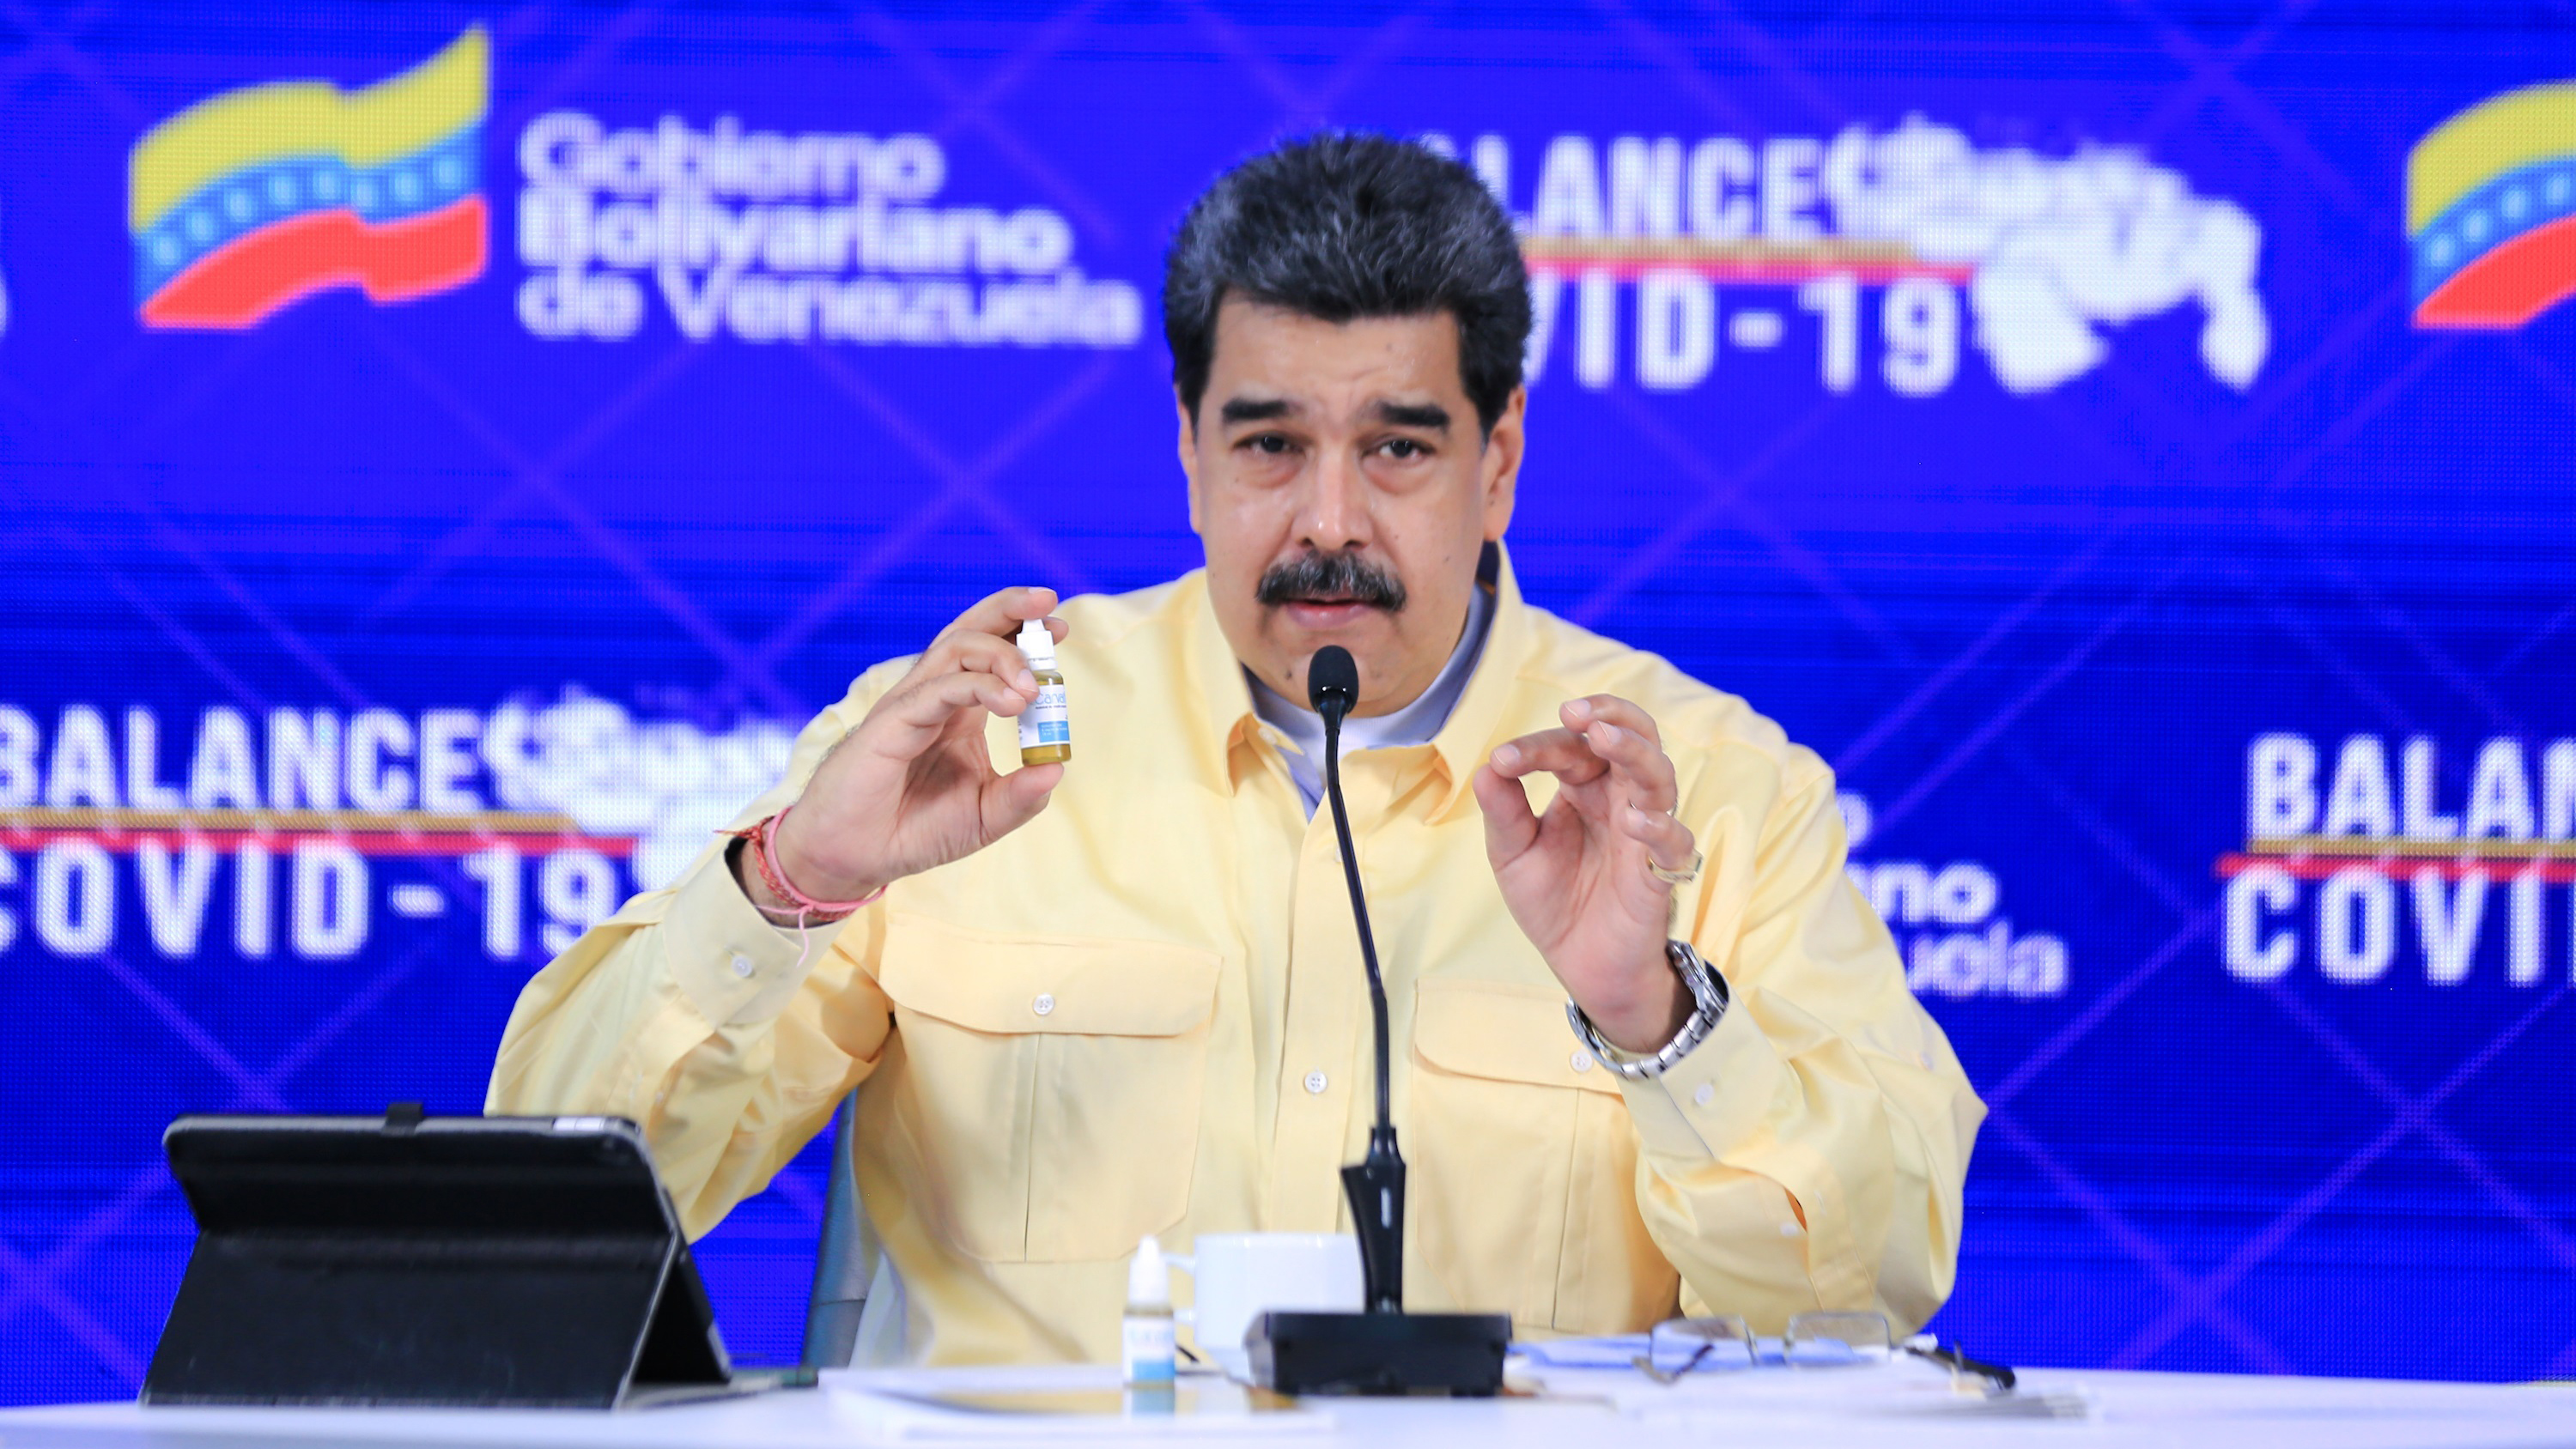 Maduro presents drug allegedly neutralizing COVID-19 – Telemundo Denver